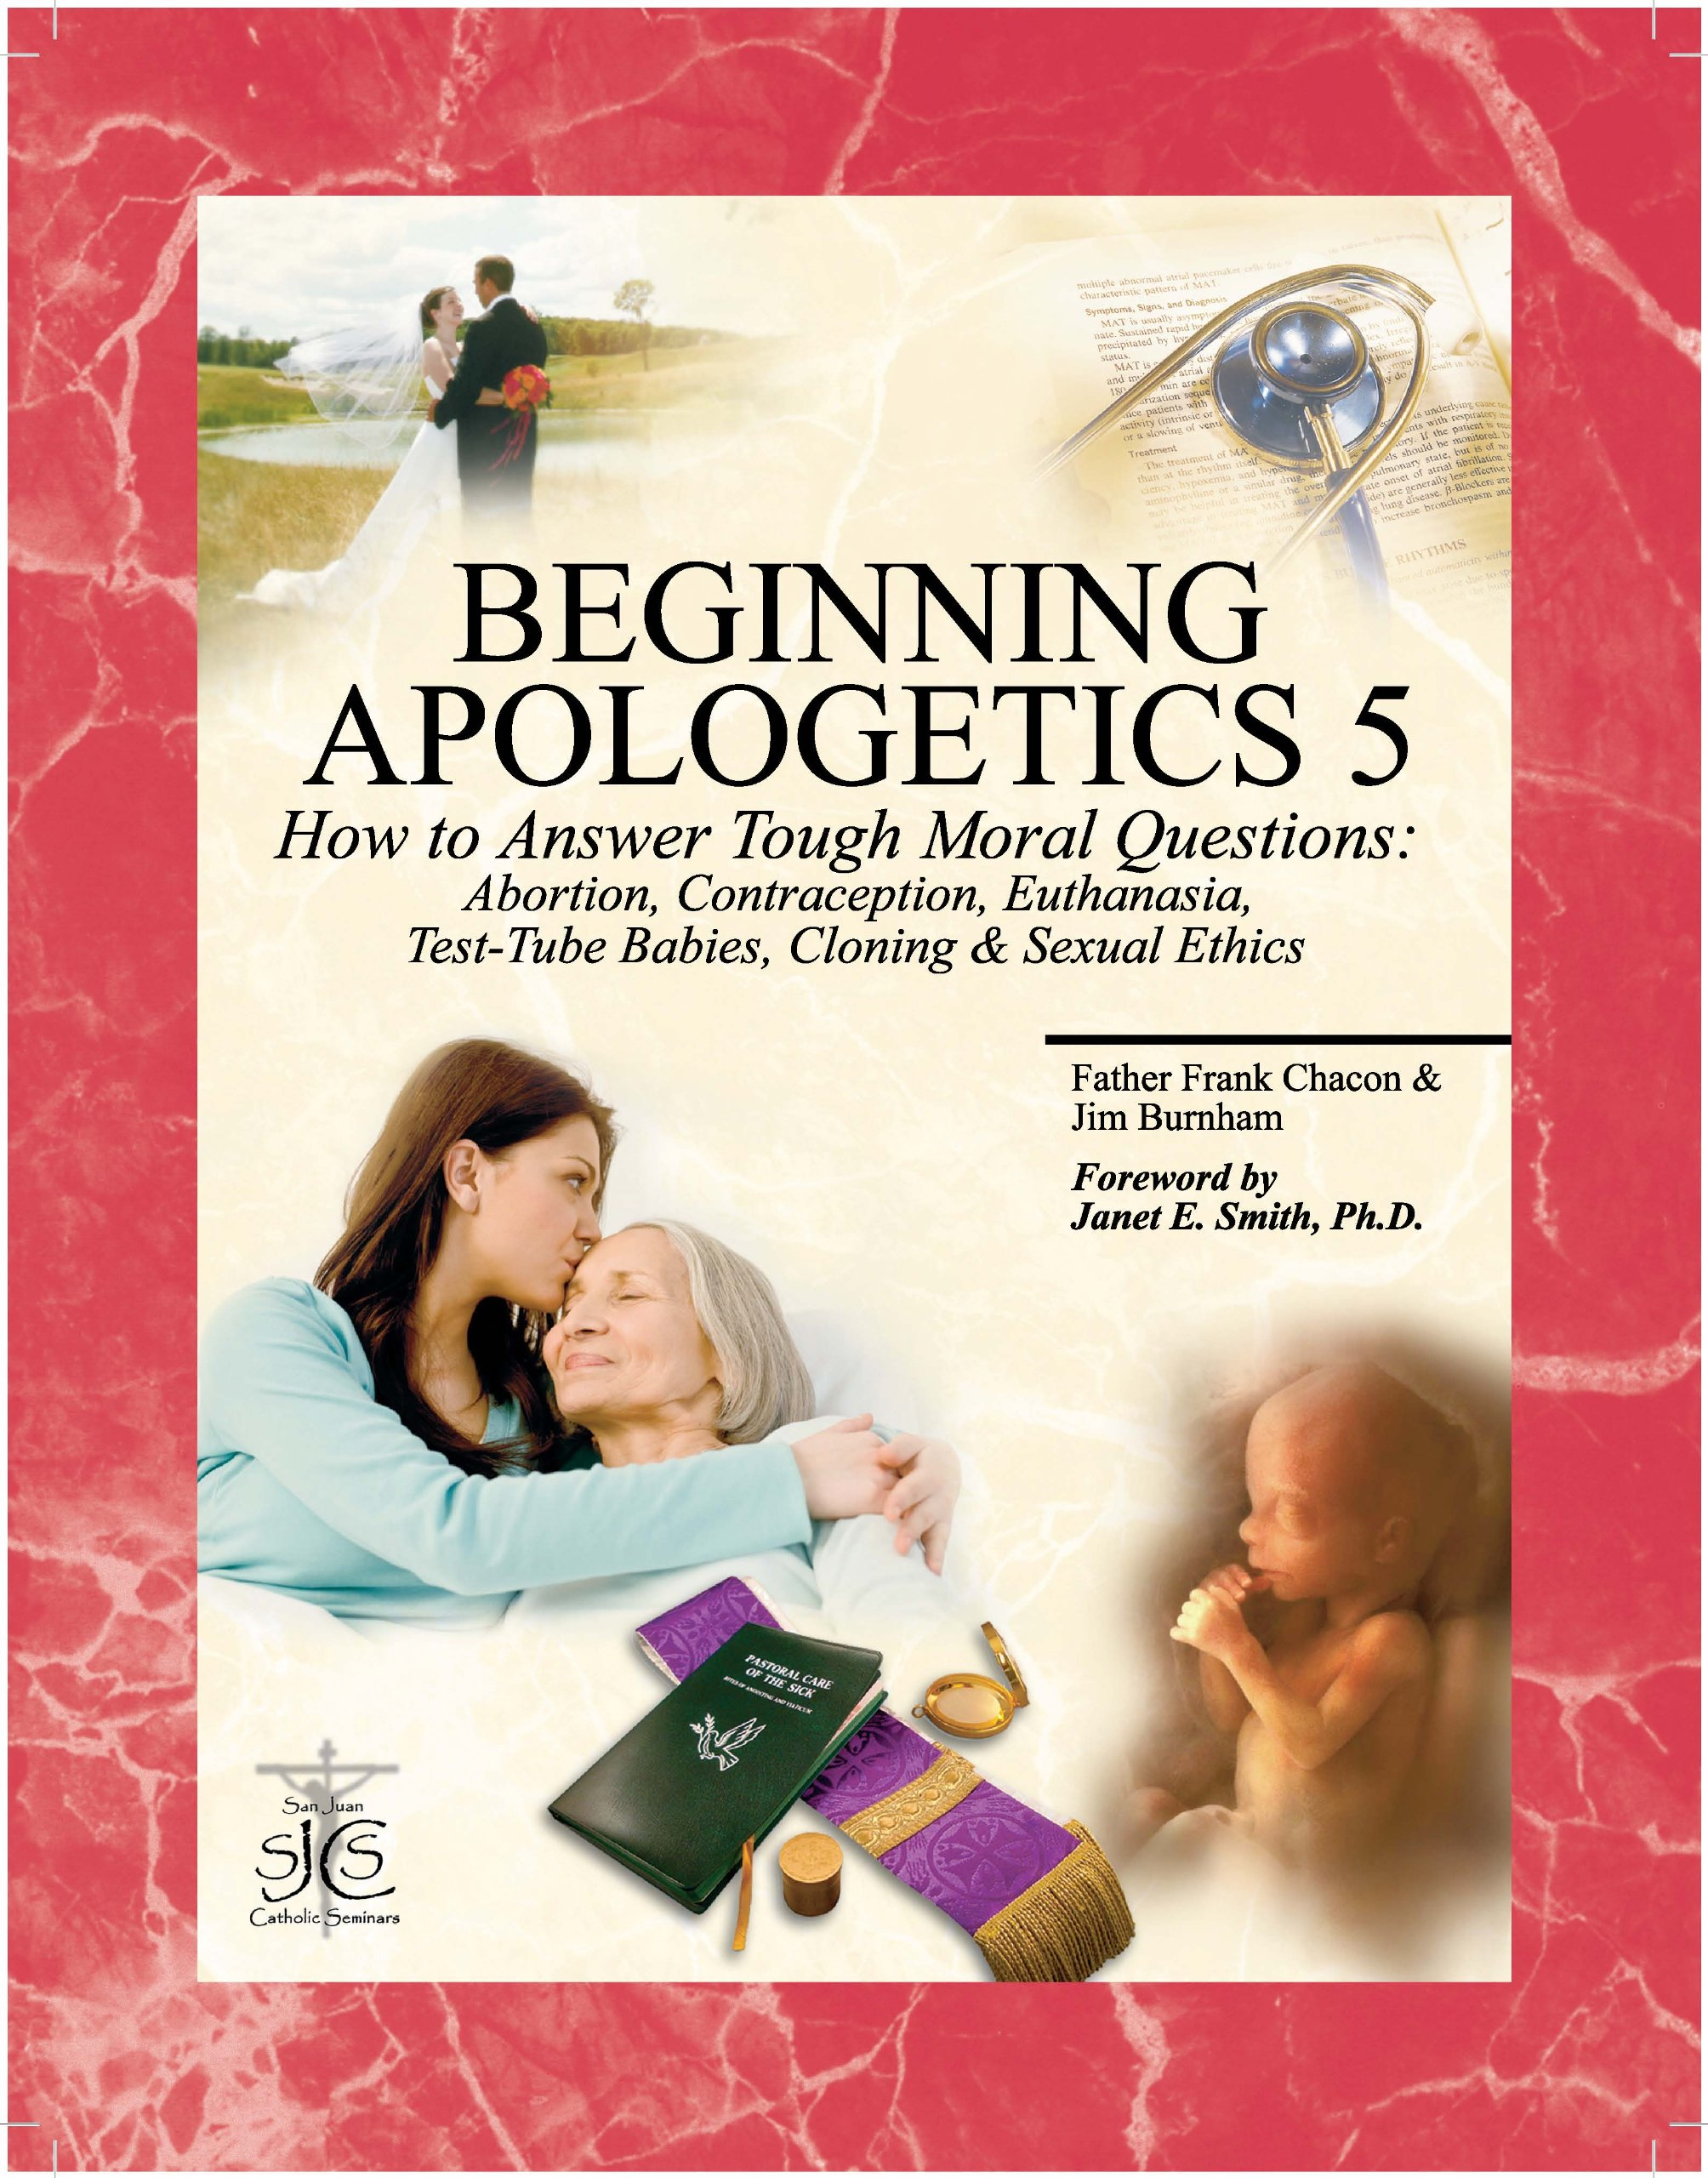 Read Online Beginning Apologetics 5: How to Answer Tough Moral Questions--Abortion, Contraception, Euthanasia, Test-Tube Babies, Cloning, & Sexual Ethics PDF